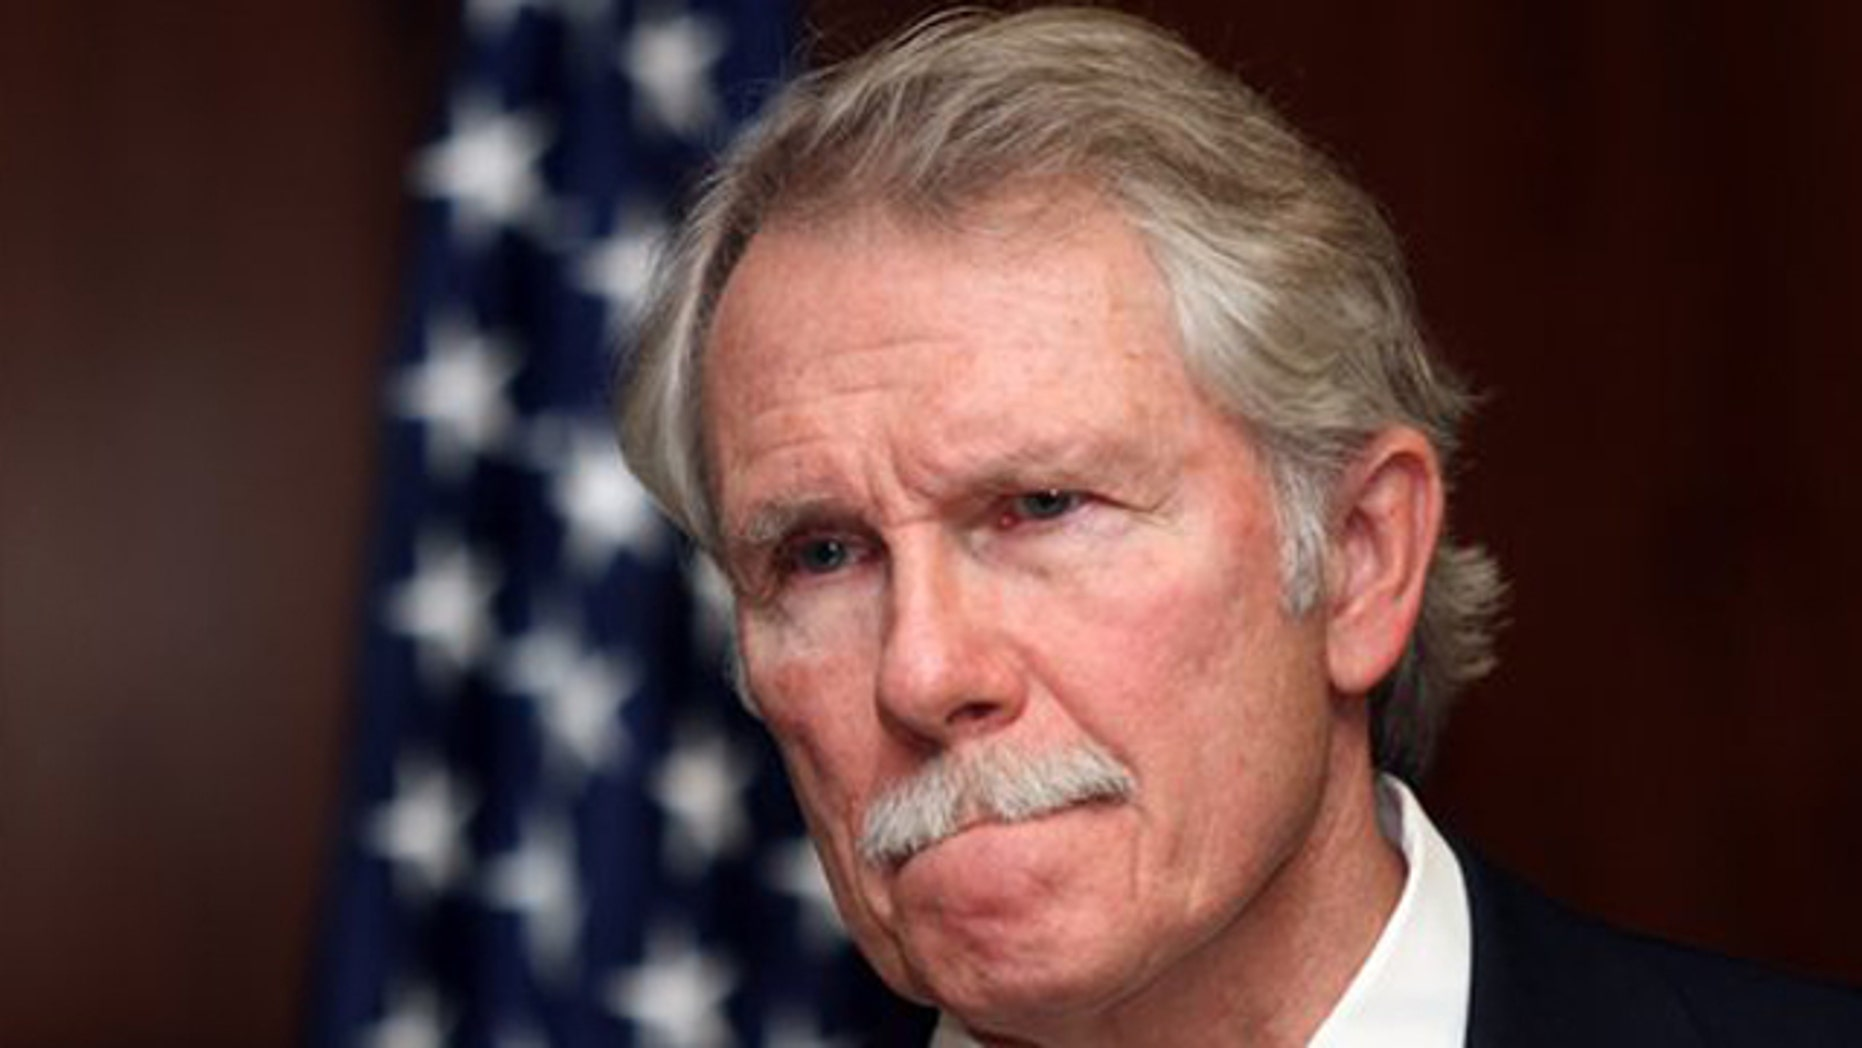 November 22, 2011: Oregon Gov. John Kitzhaber pauses while speaking in Salem, Ore.